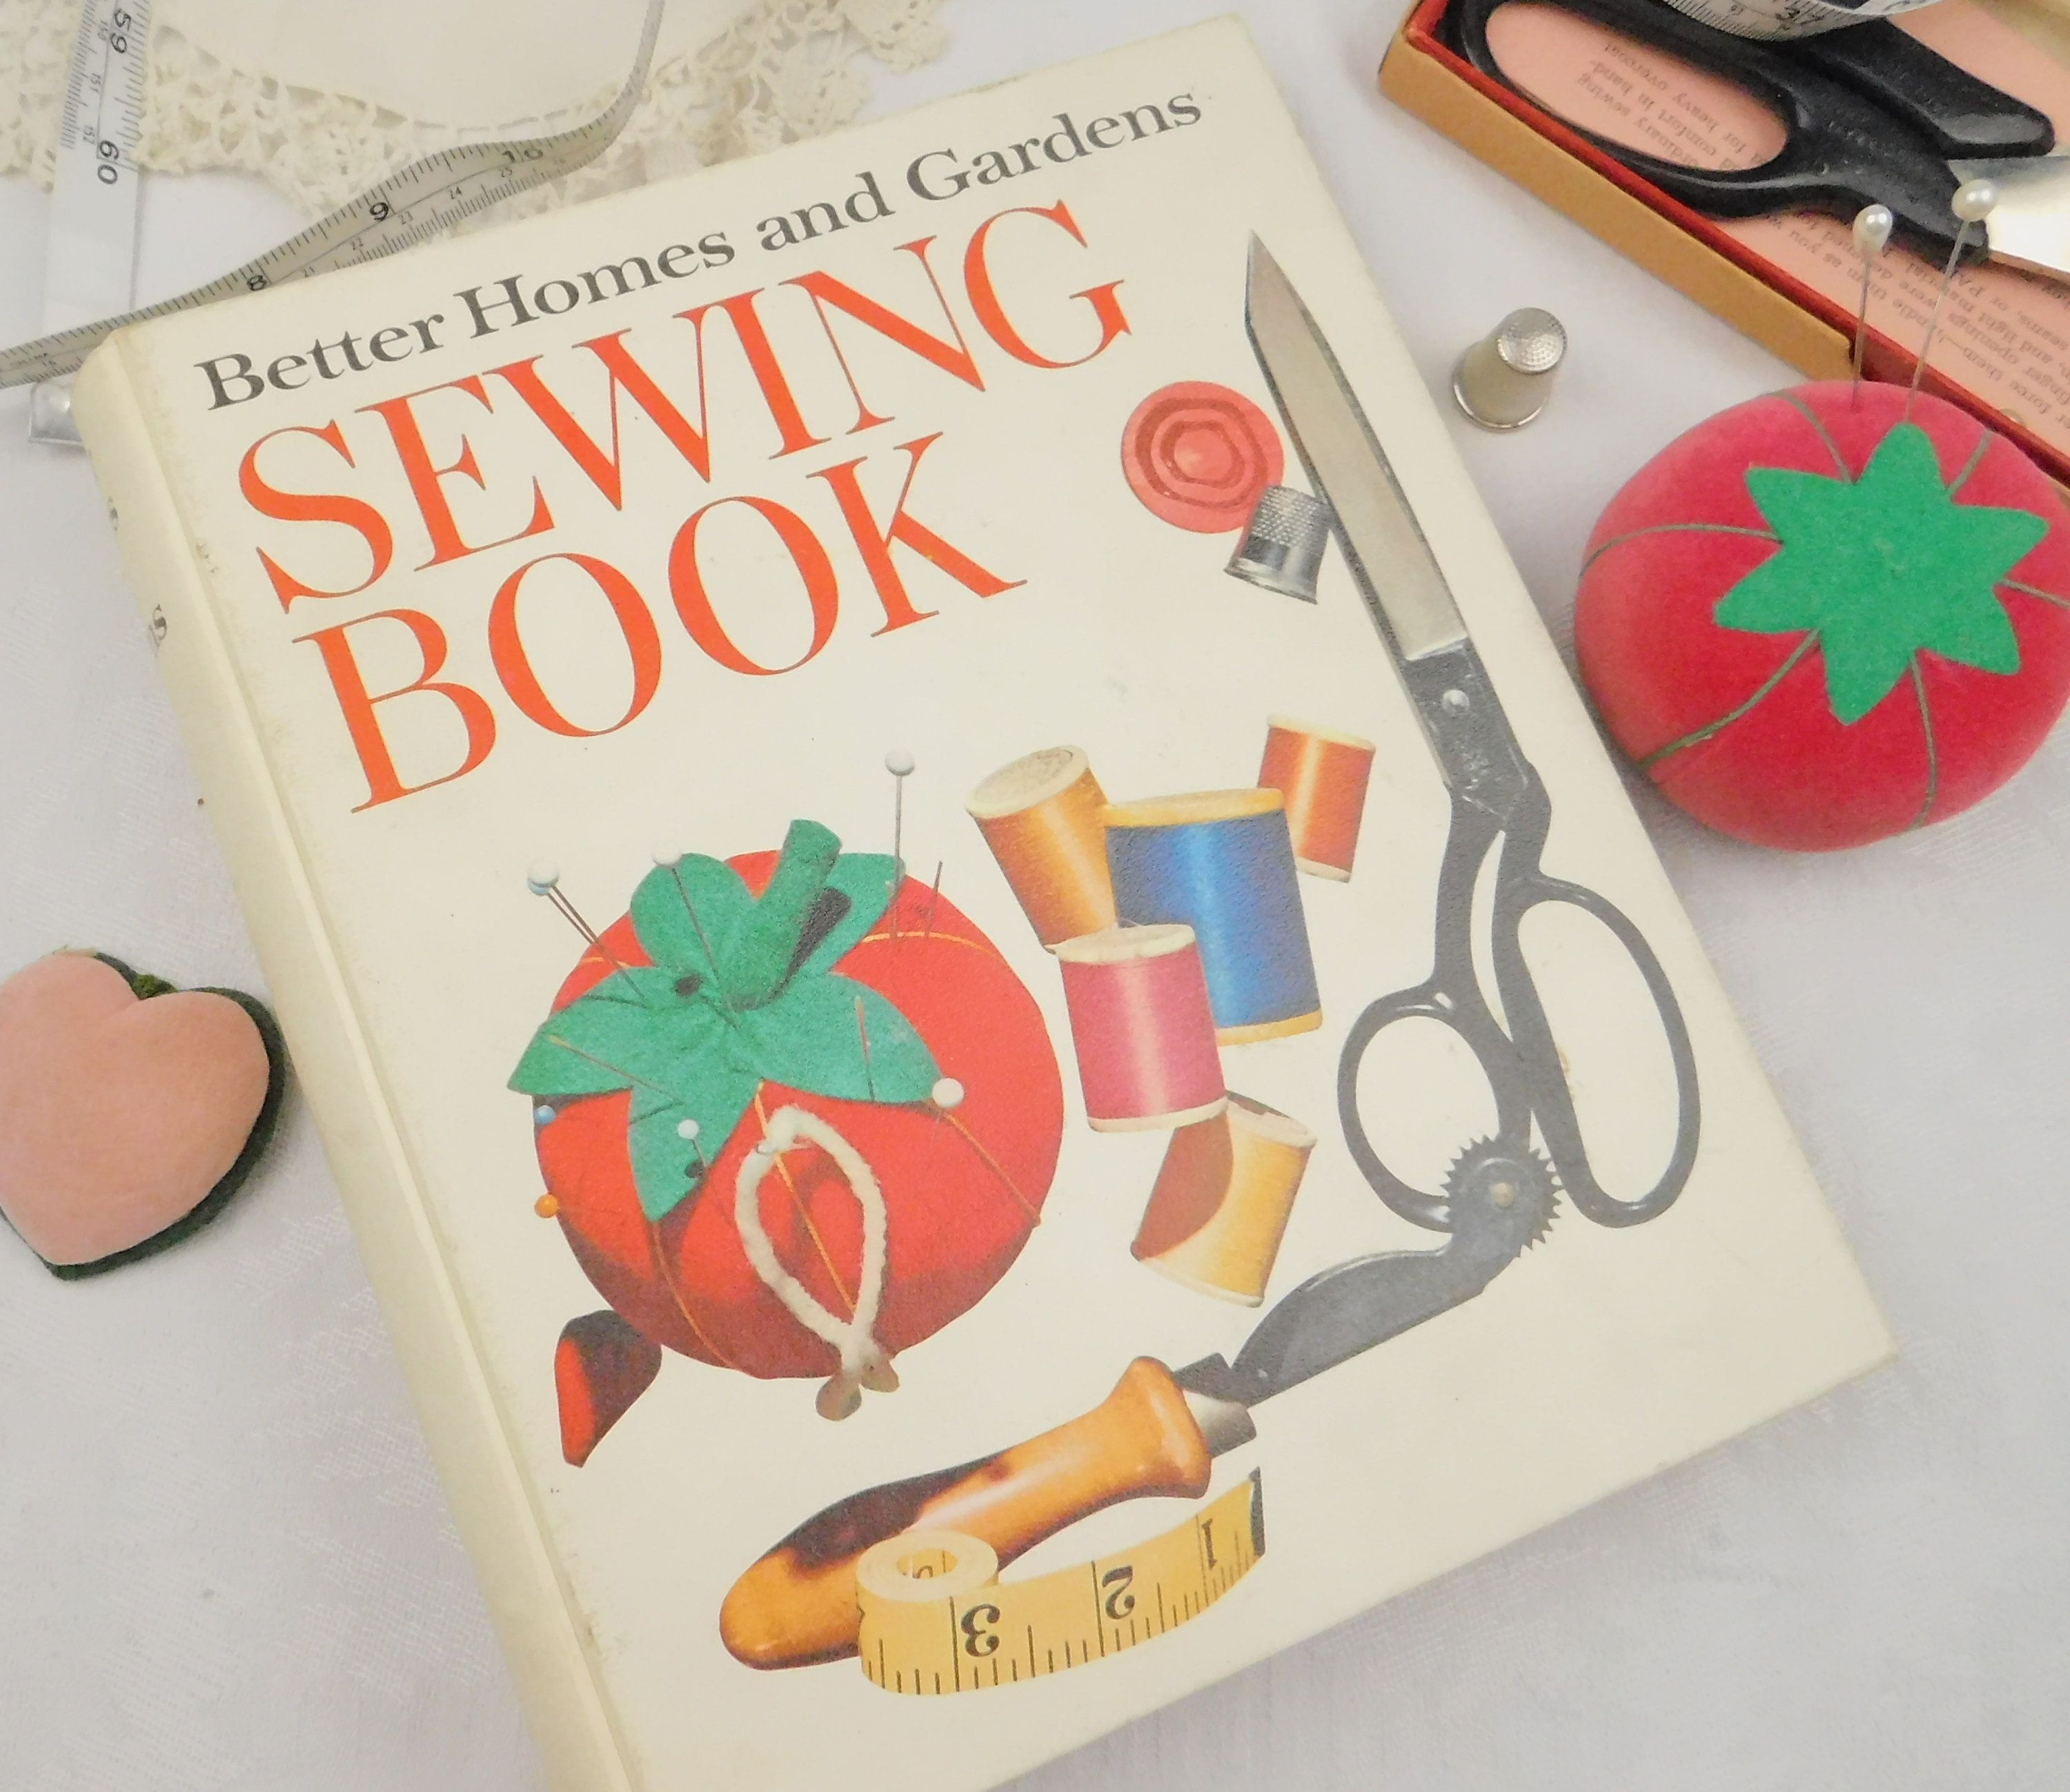 Better Homes And Gardens Sewing Book 1970